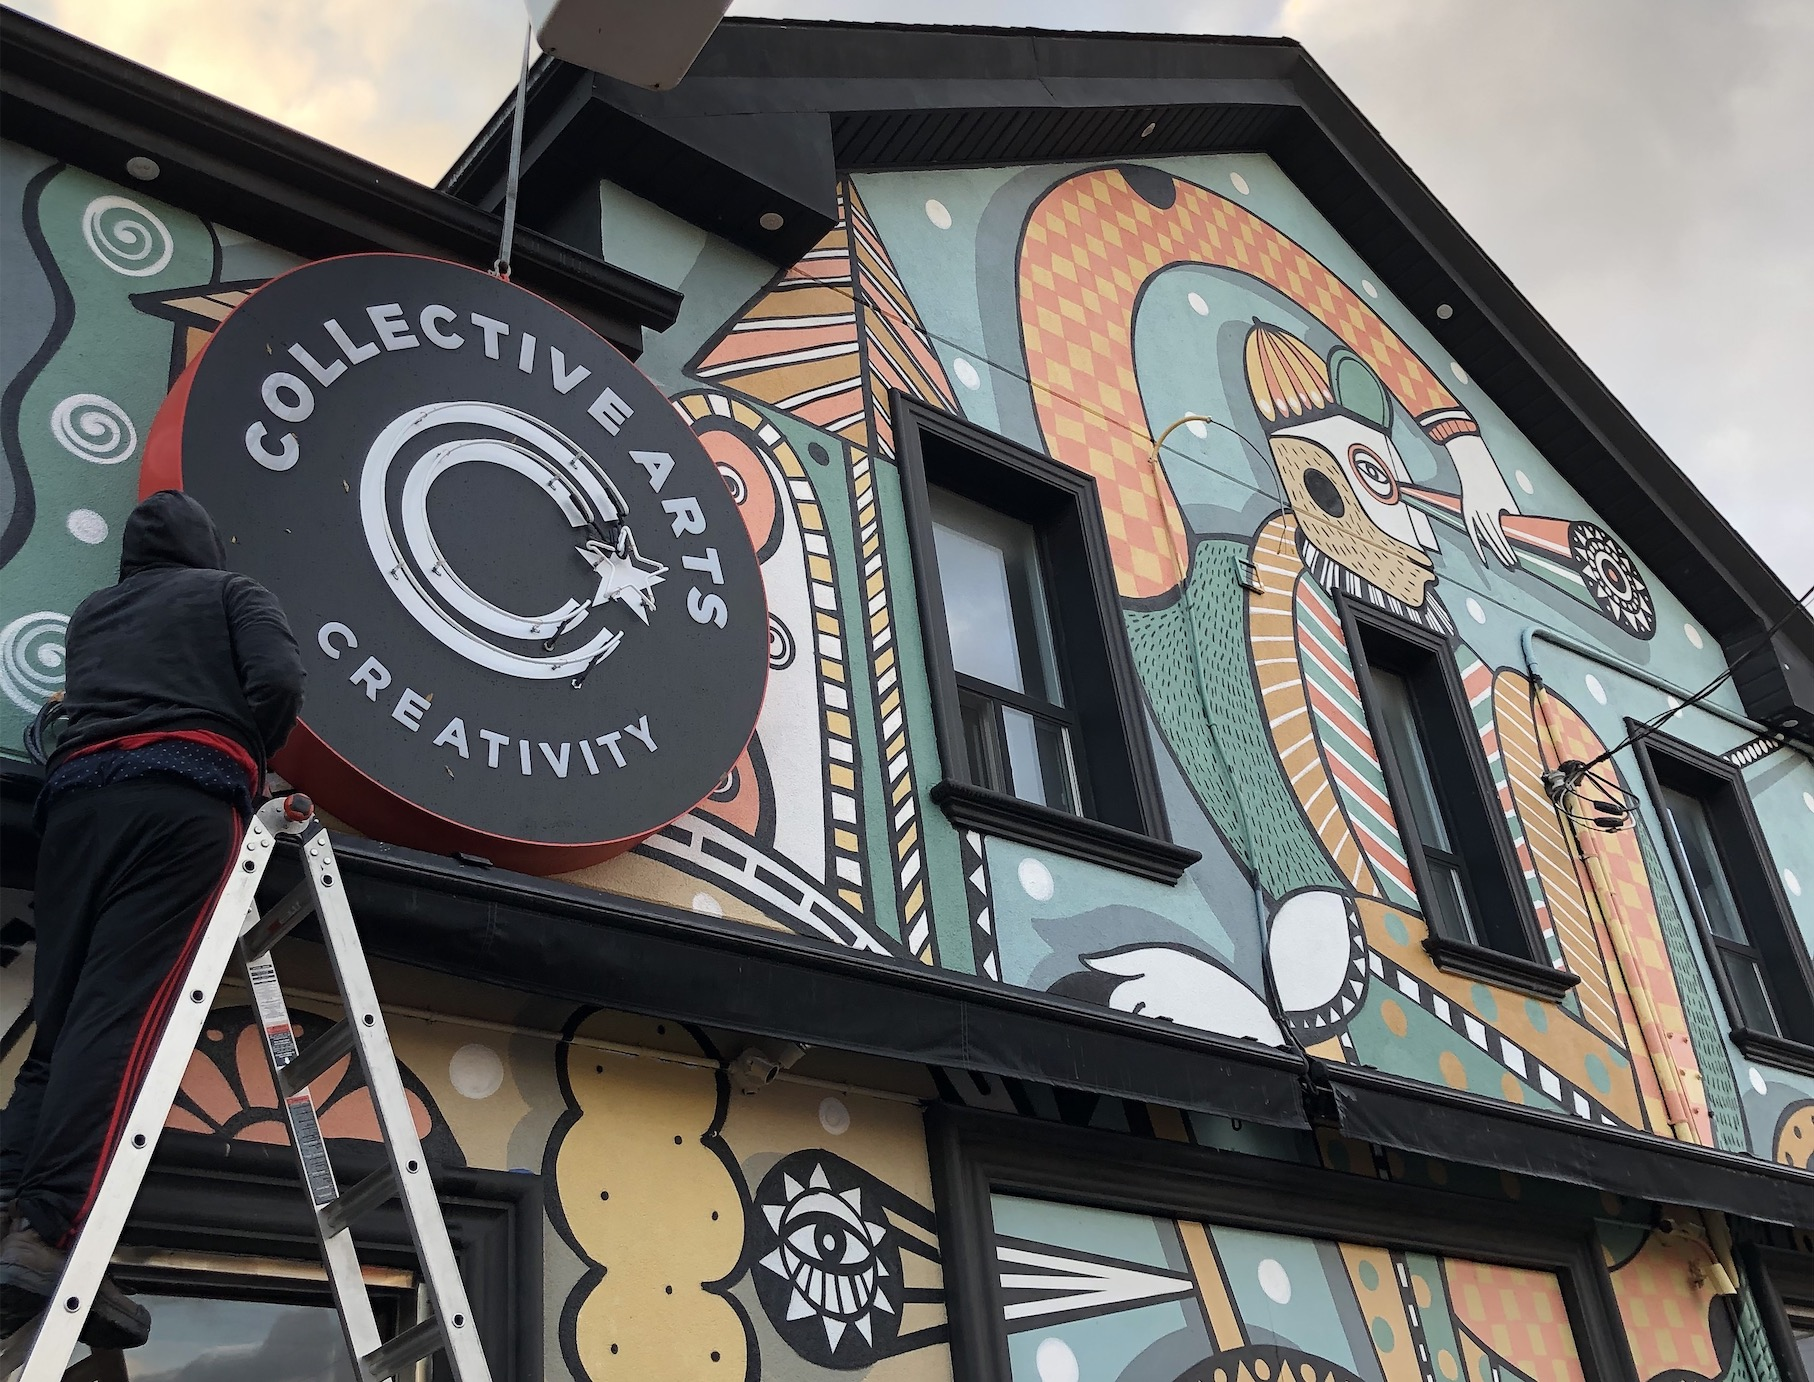 Collective Arts Brewery